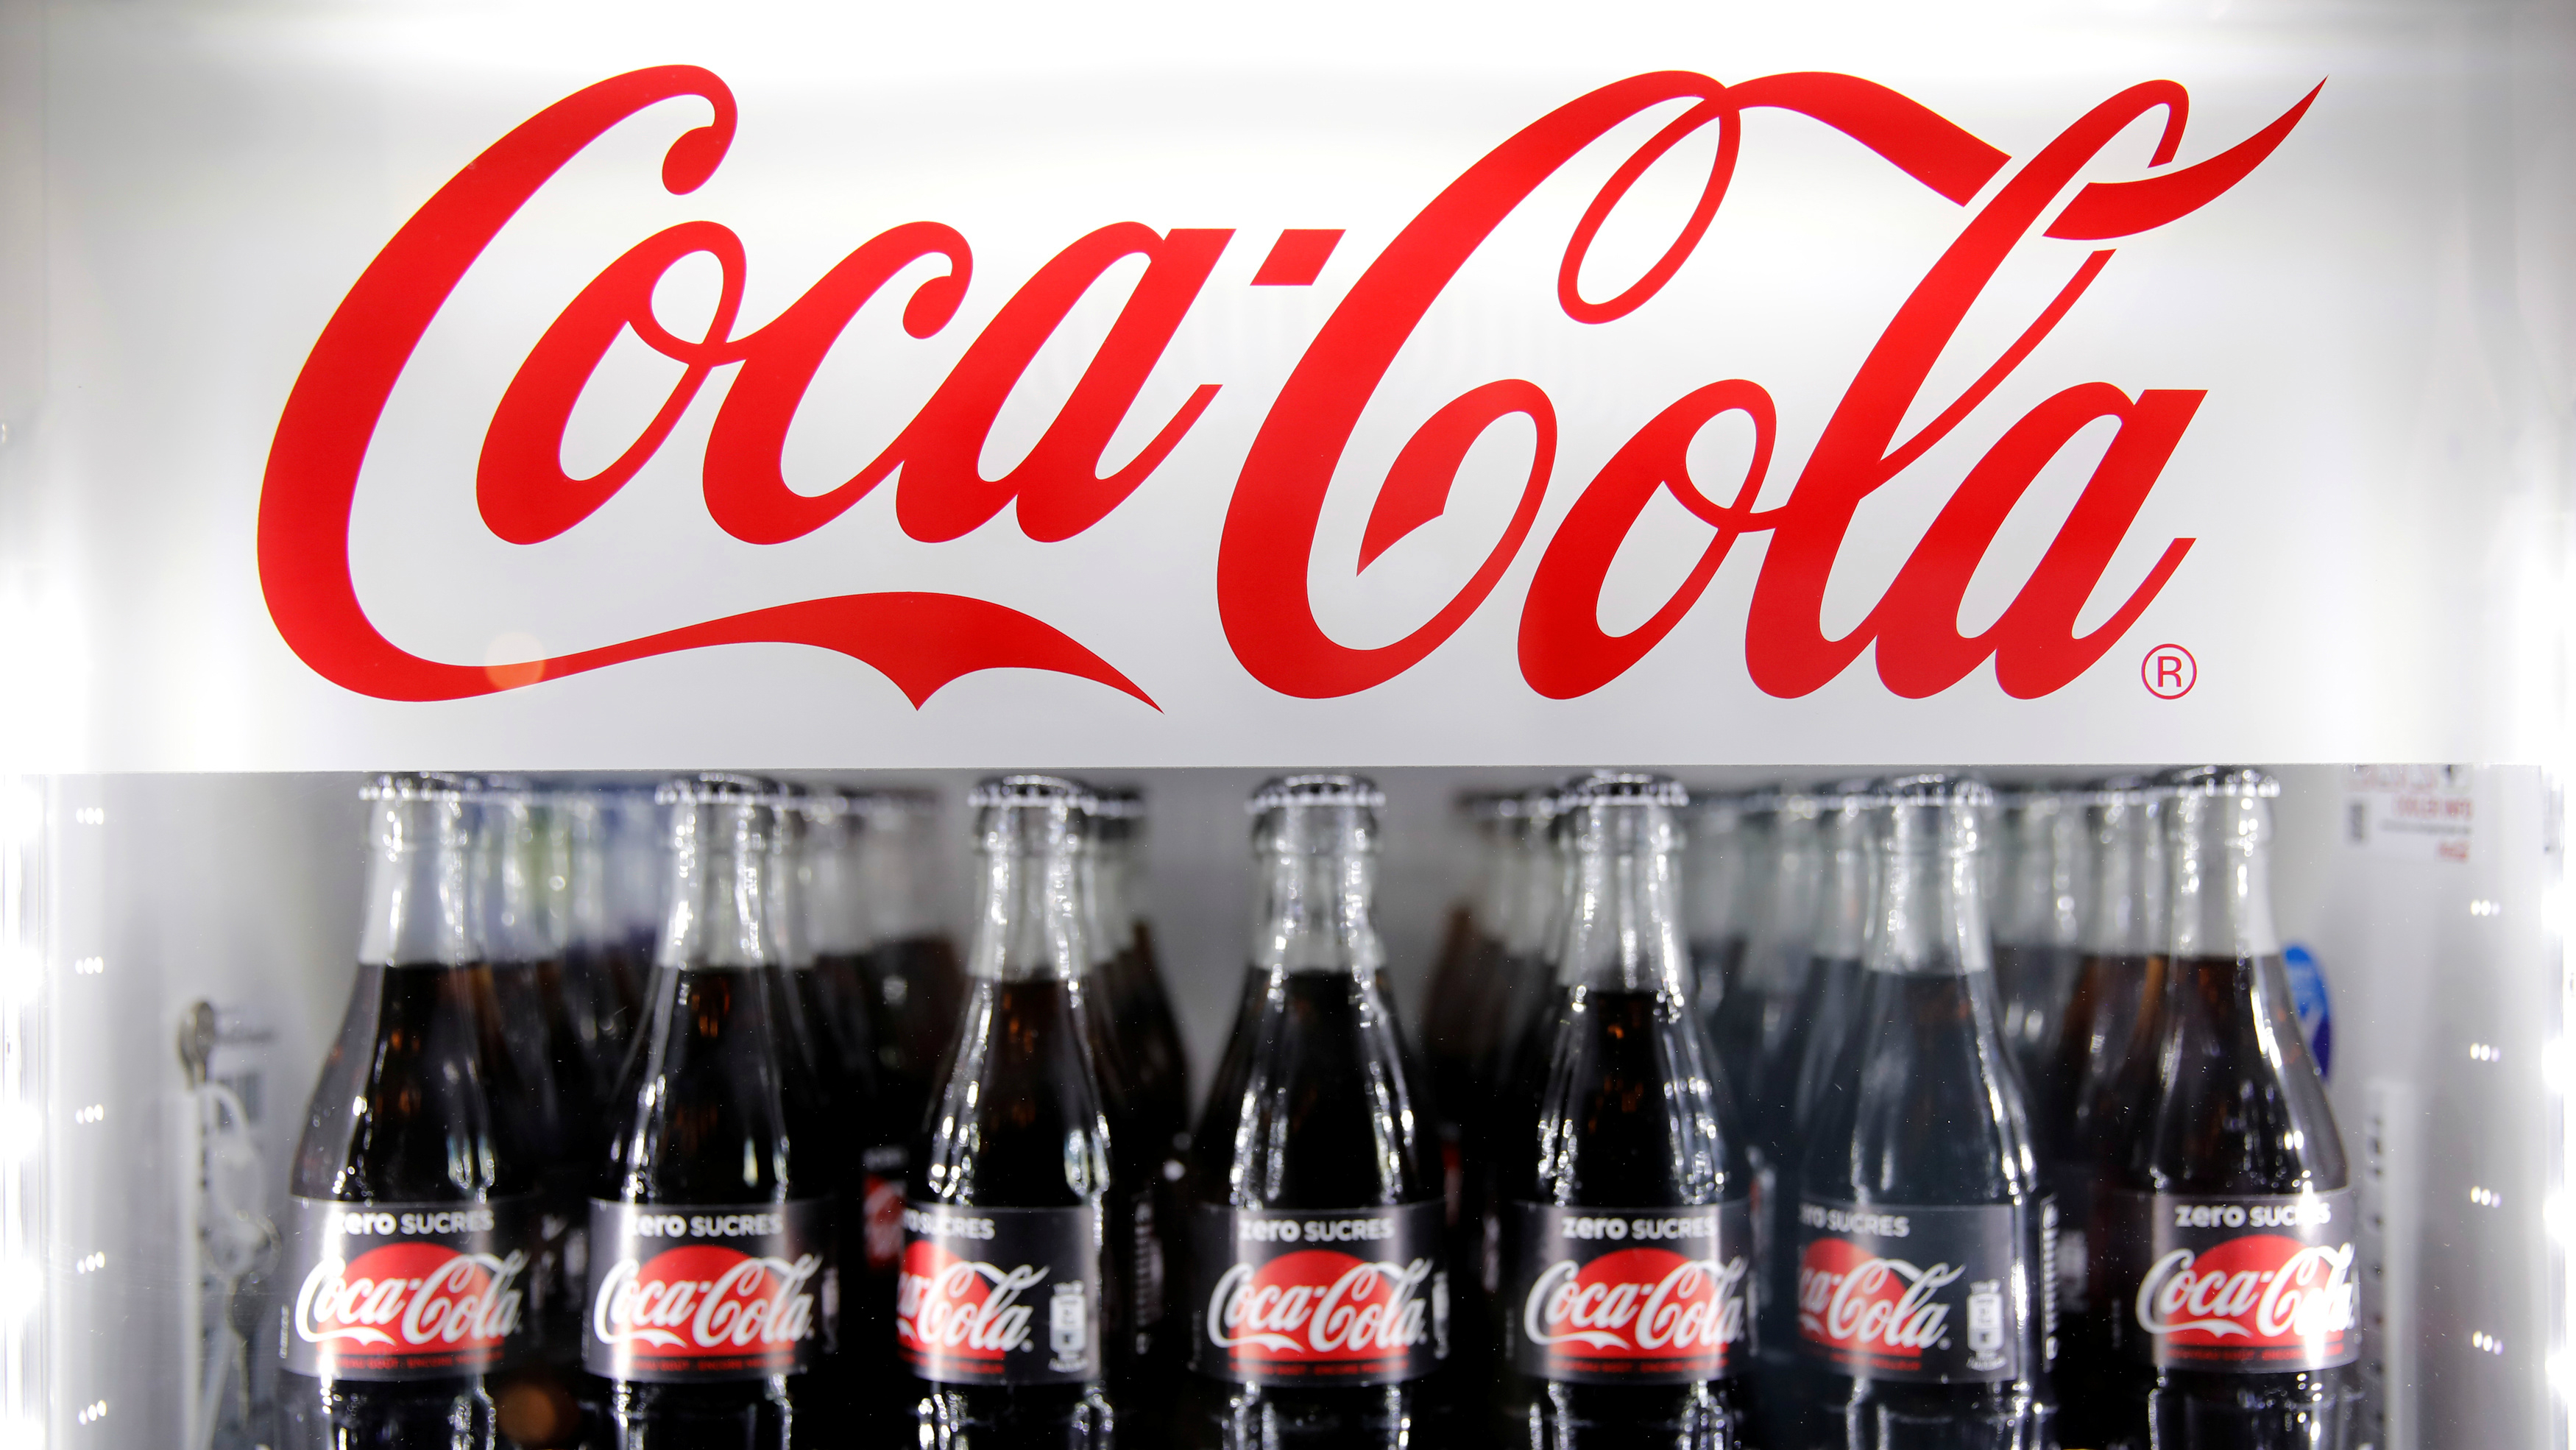 Coca-Cola (KO) has quietly removed sugar from some of its